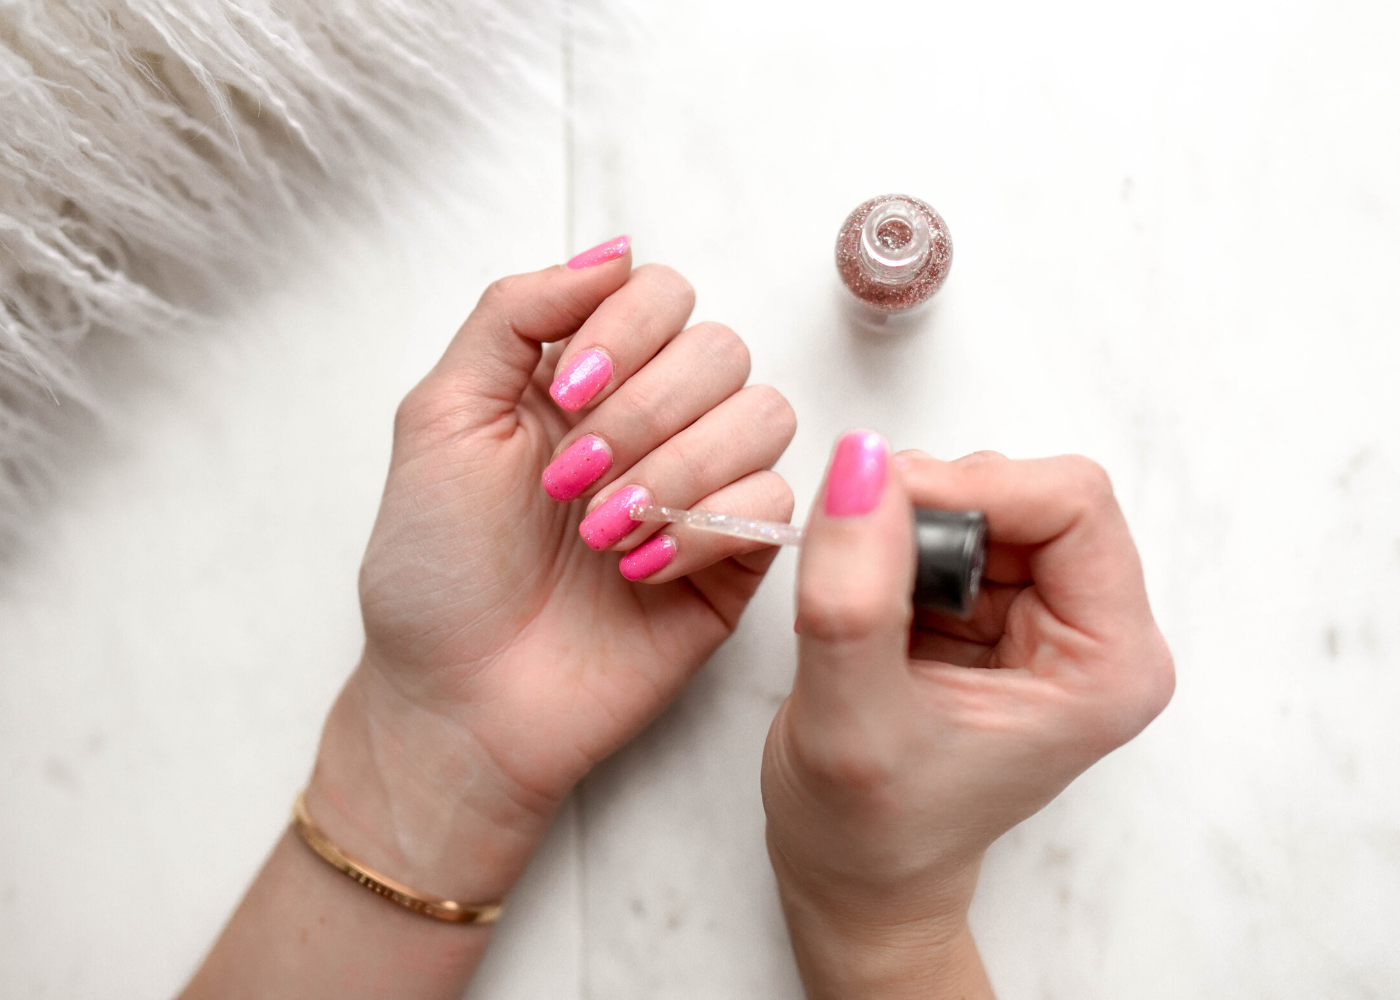 An expert's step-by-step guide to a DIY manicure at home, complete with pro-tips and tools